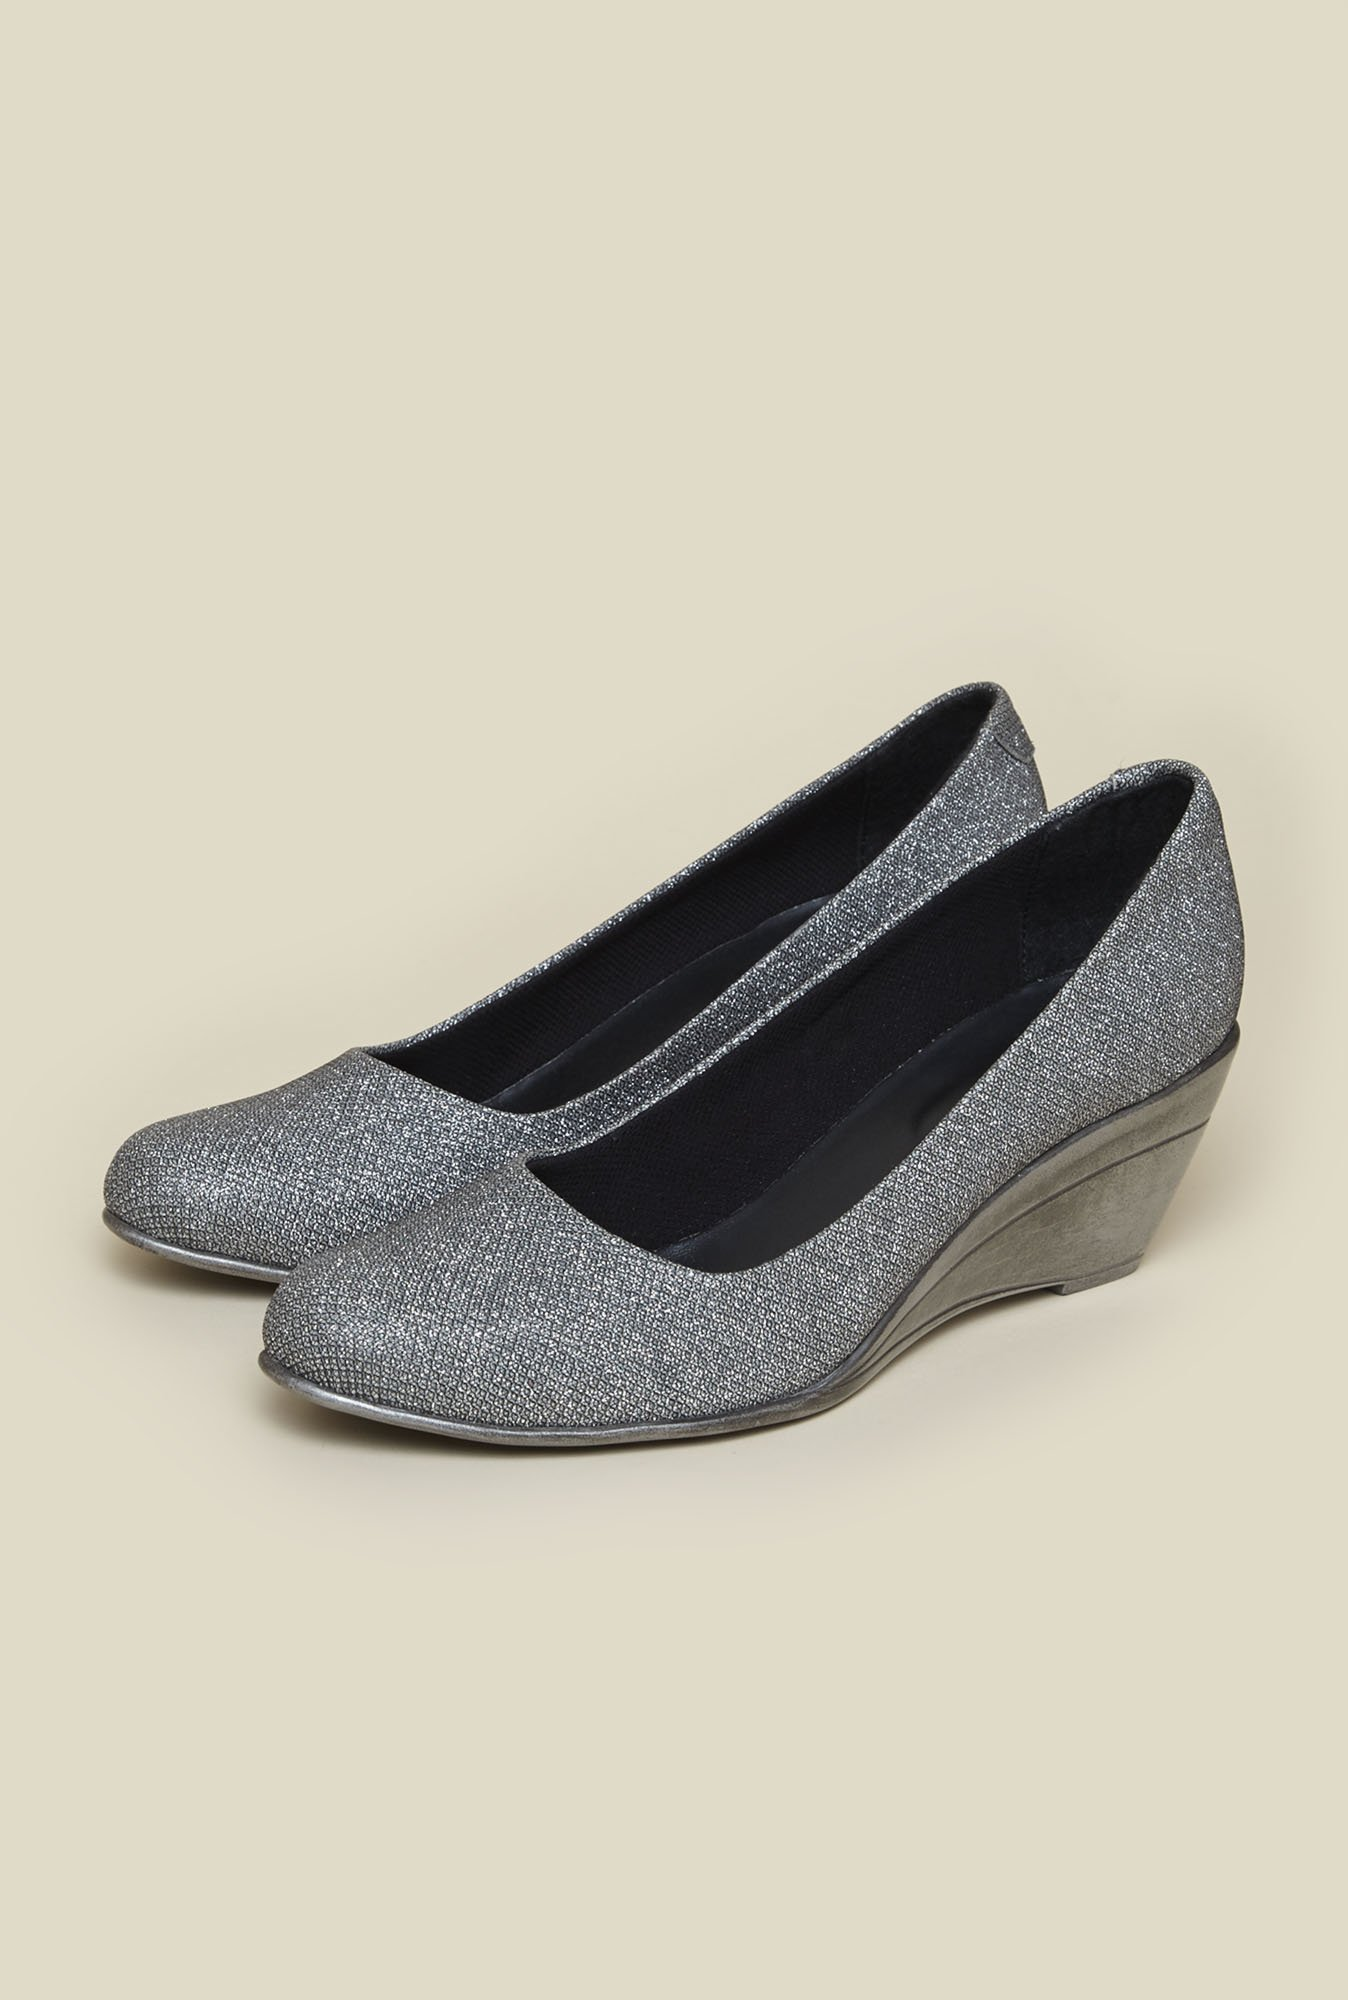 Metro Silver Wedge Heel Shoes